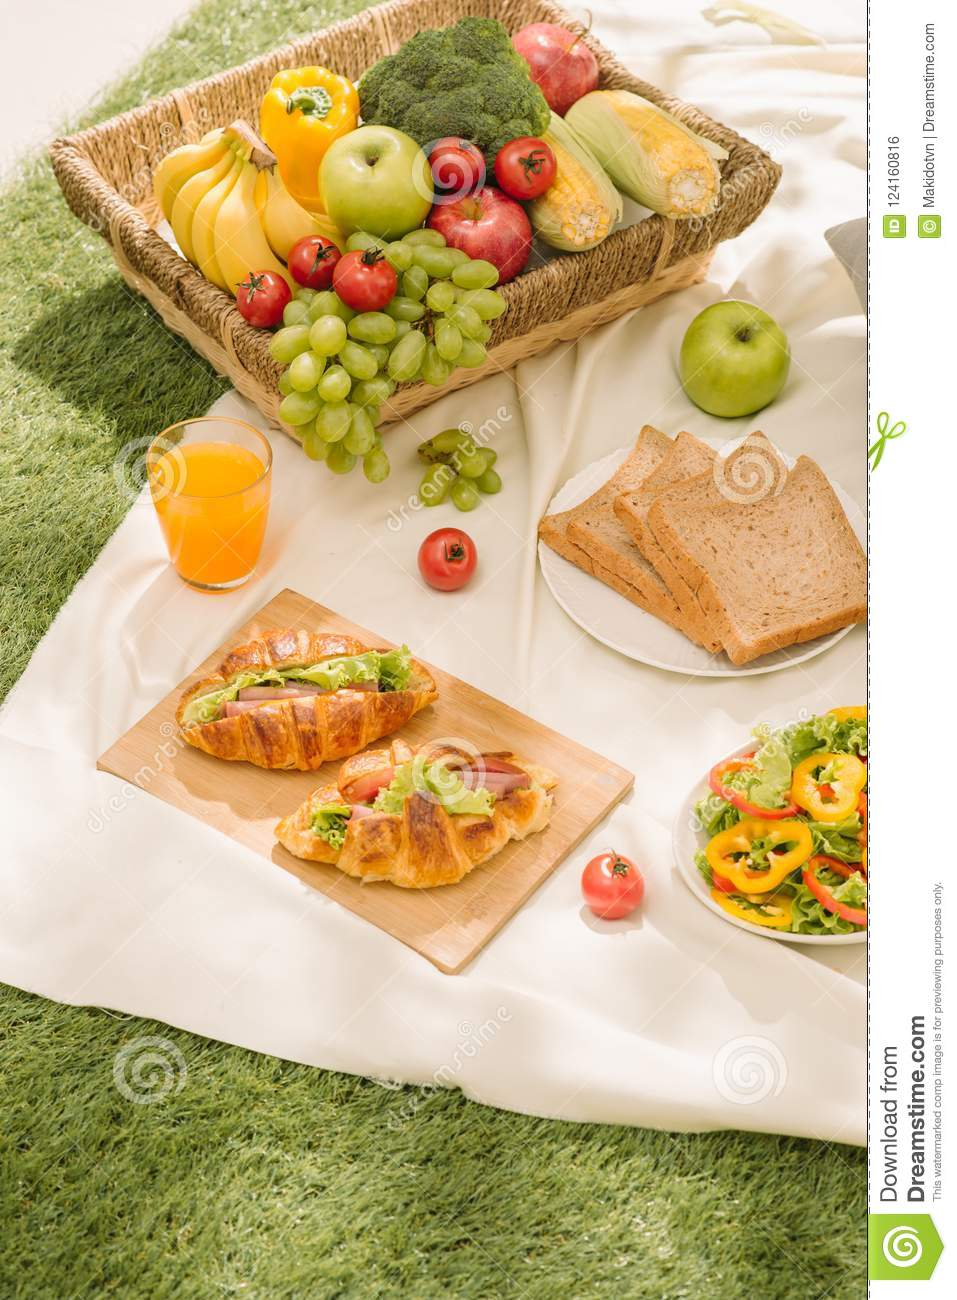 Healthy food and accessories outdoor summer or spring picnic, Pi